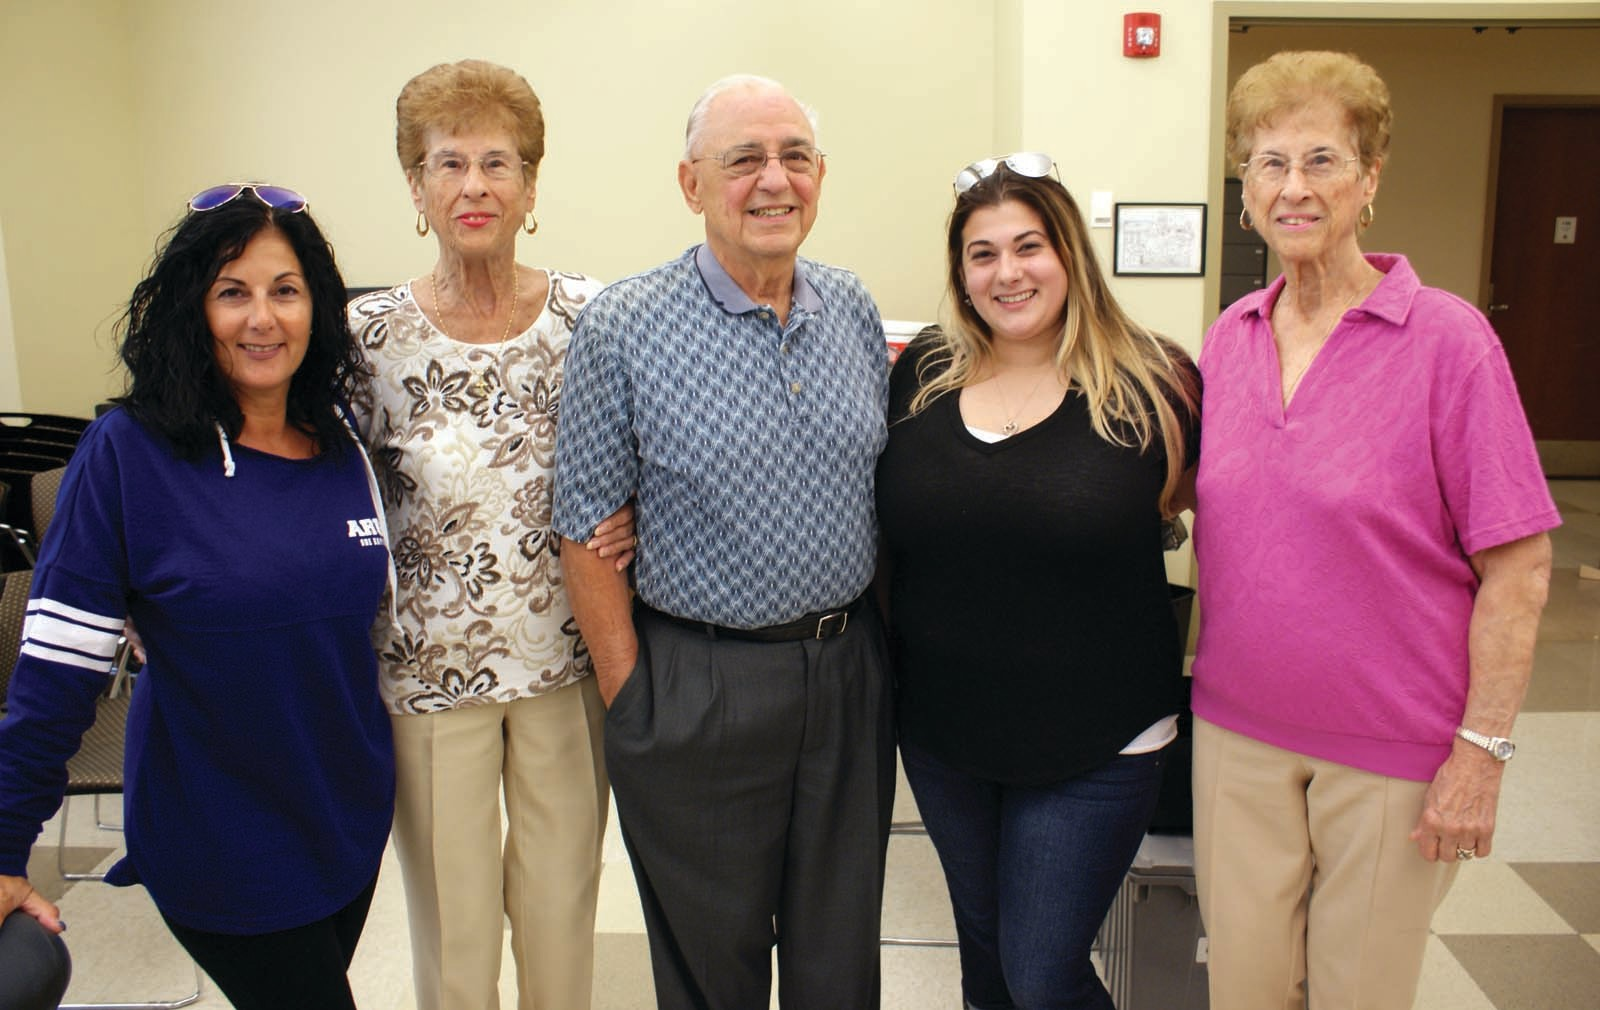 FAMILY MATTERS: For the past six years, the Cranston Police Department has hosted the Miranda Petrella Blood Drive with the RI Blood Center. Pictured at this year's drive are some of Miranda's relatives, Tracy Petrella, Marie Stabile, Edmund Stabile, Miranda Petrella and Santina Leonard.